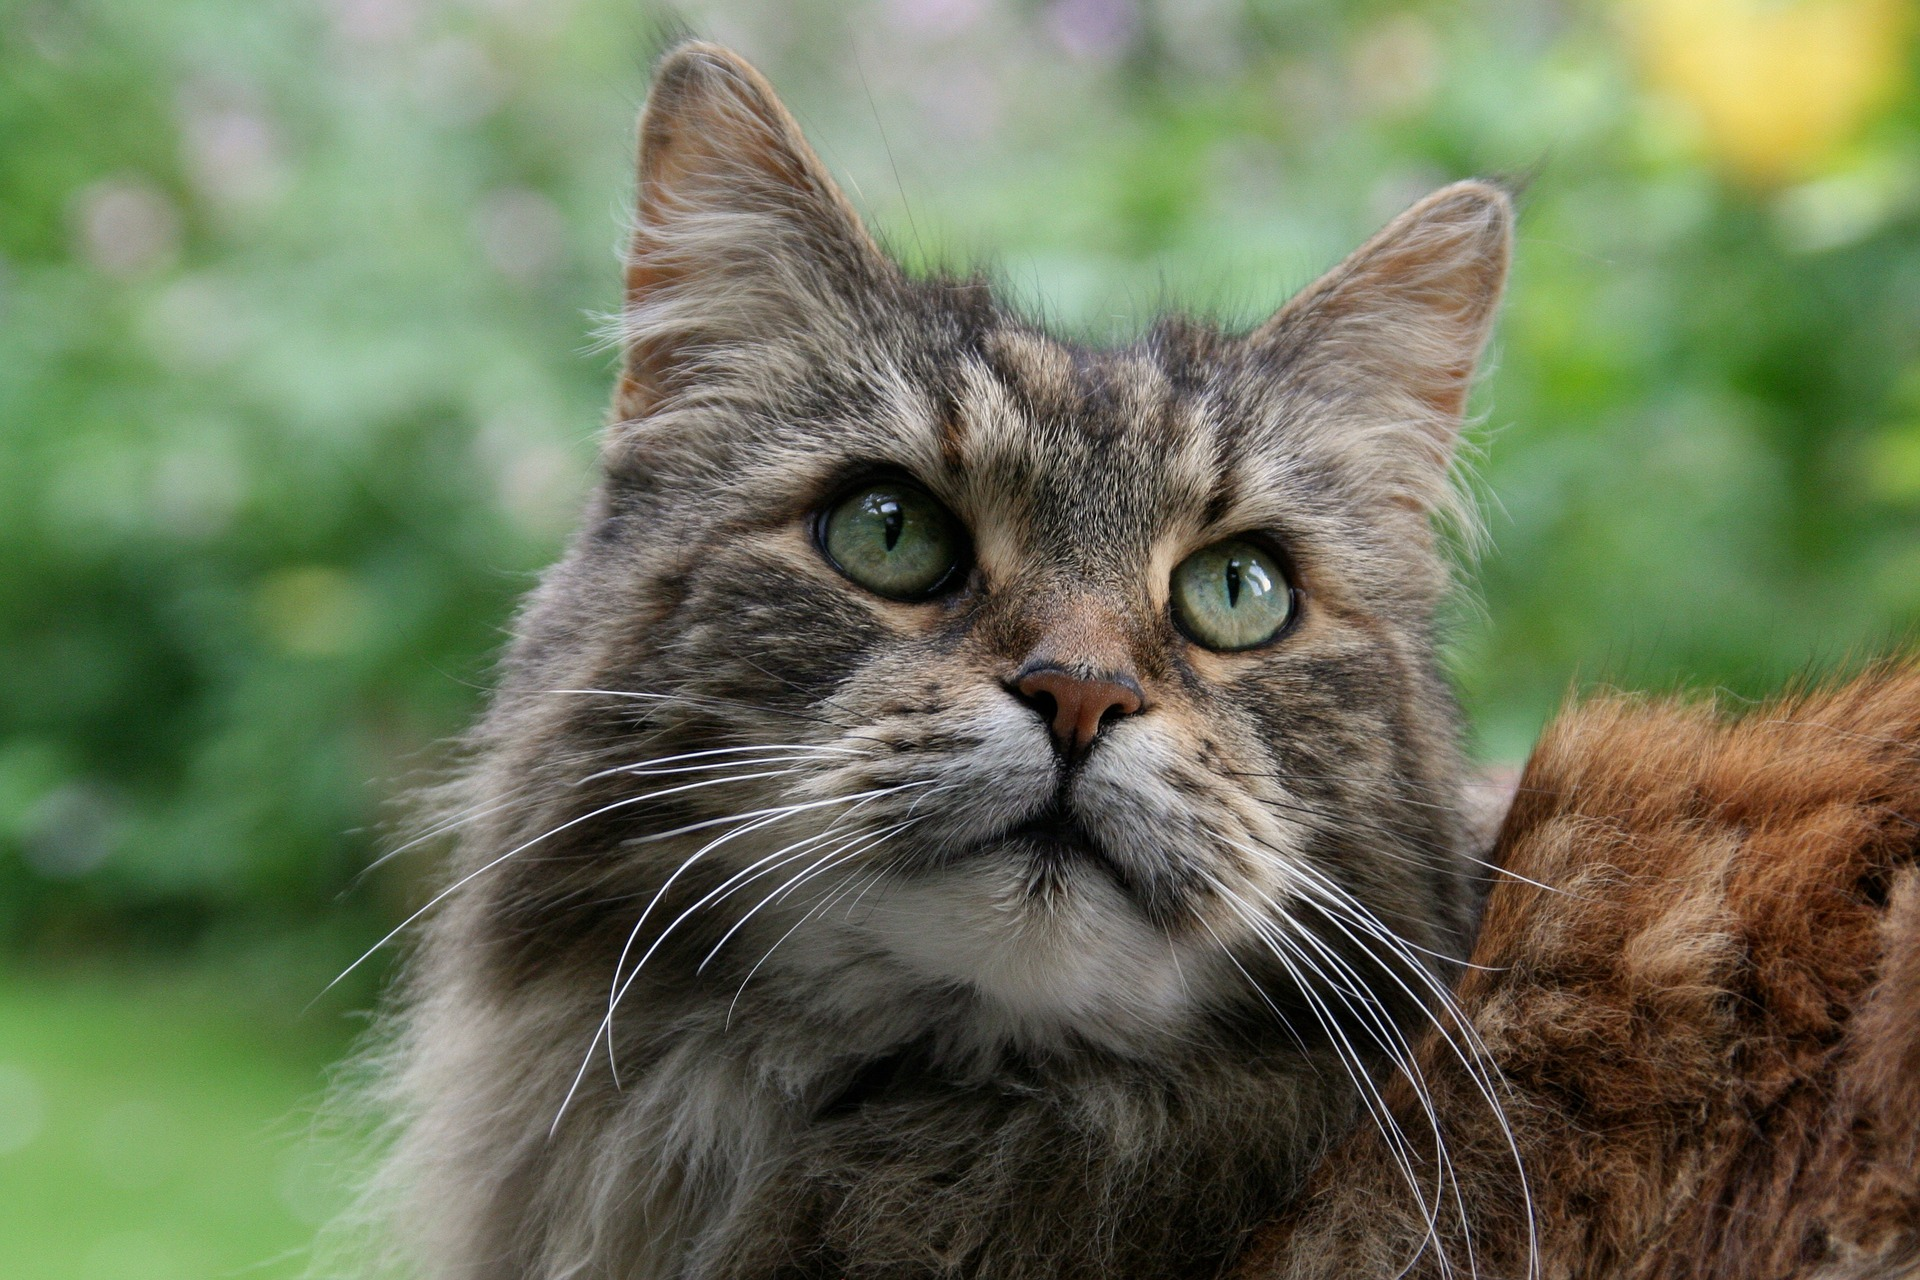 Breeds of Cats That Are the Most Cheerful and Friendliest in Nature